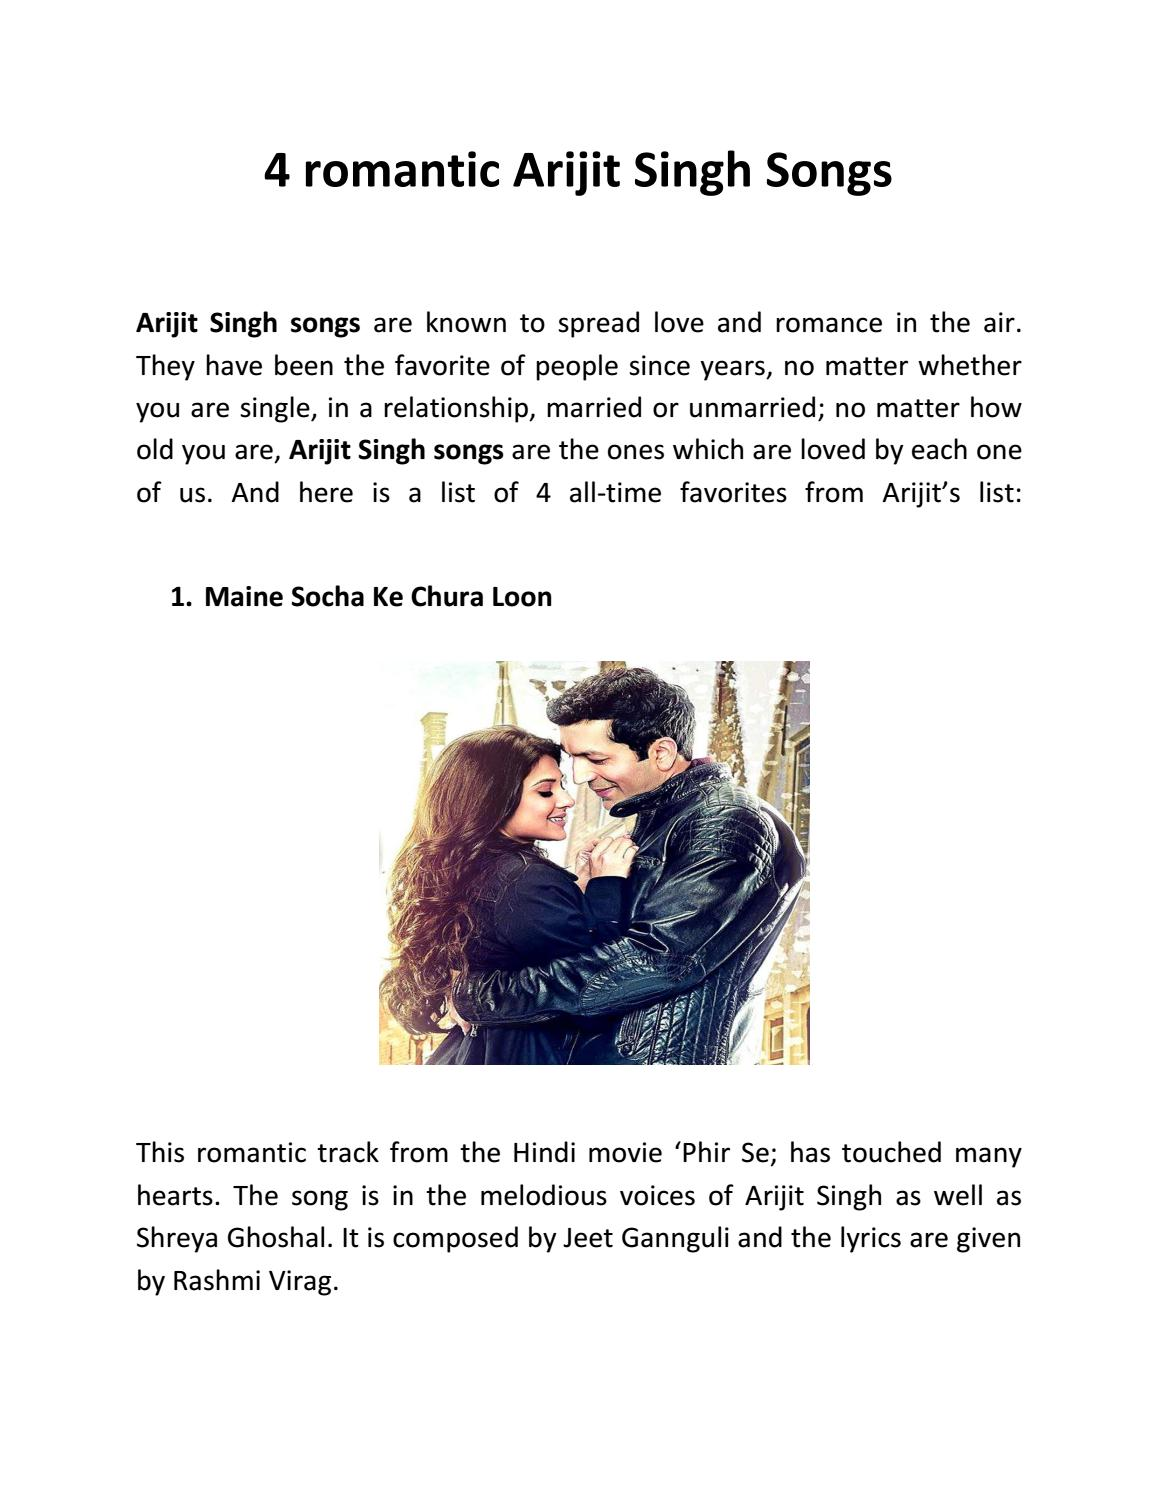 4 Romantic Arijit Singh Songs By Pagalworld Issuu No one, not even singh himself. 4 romantic arijit singh songs by